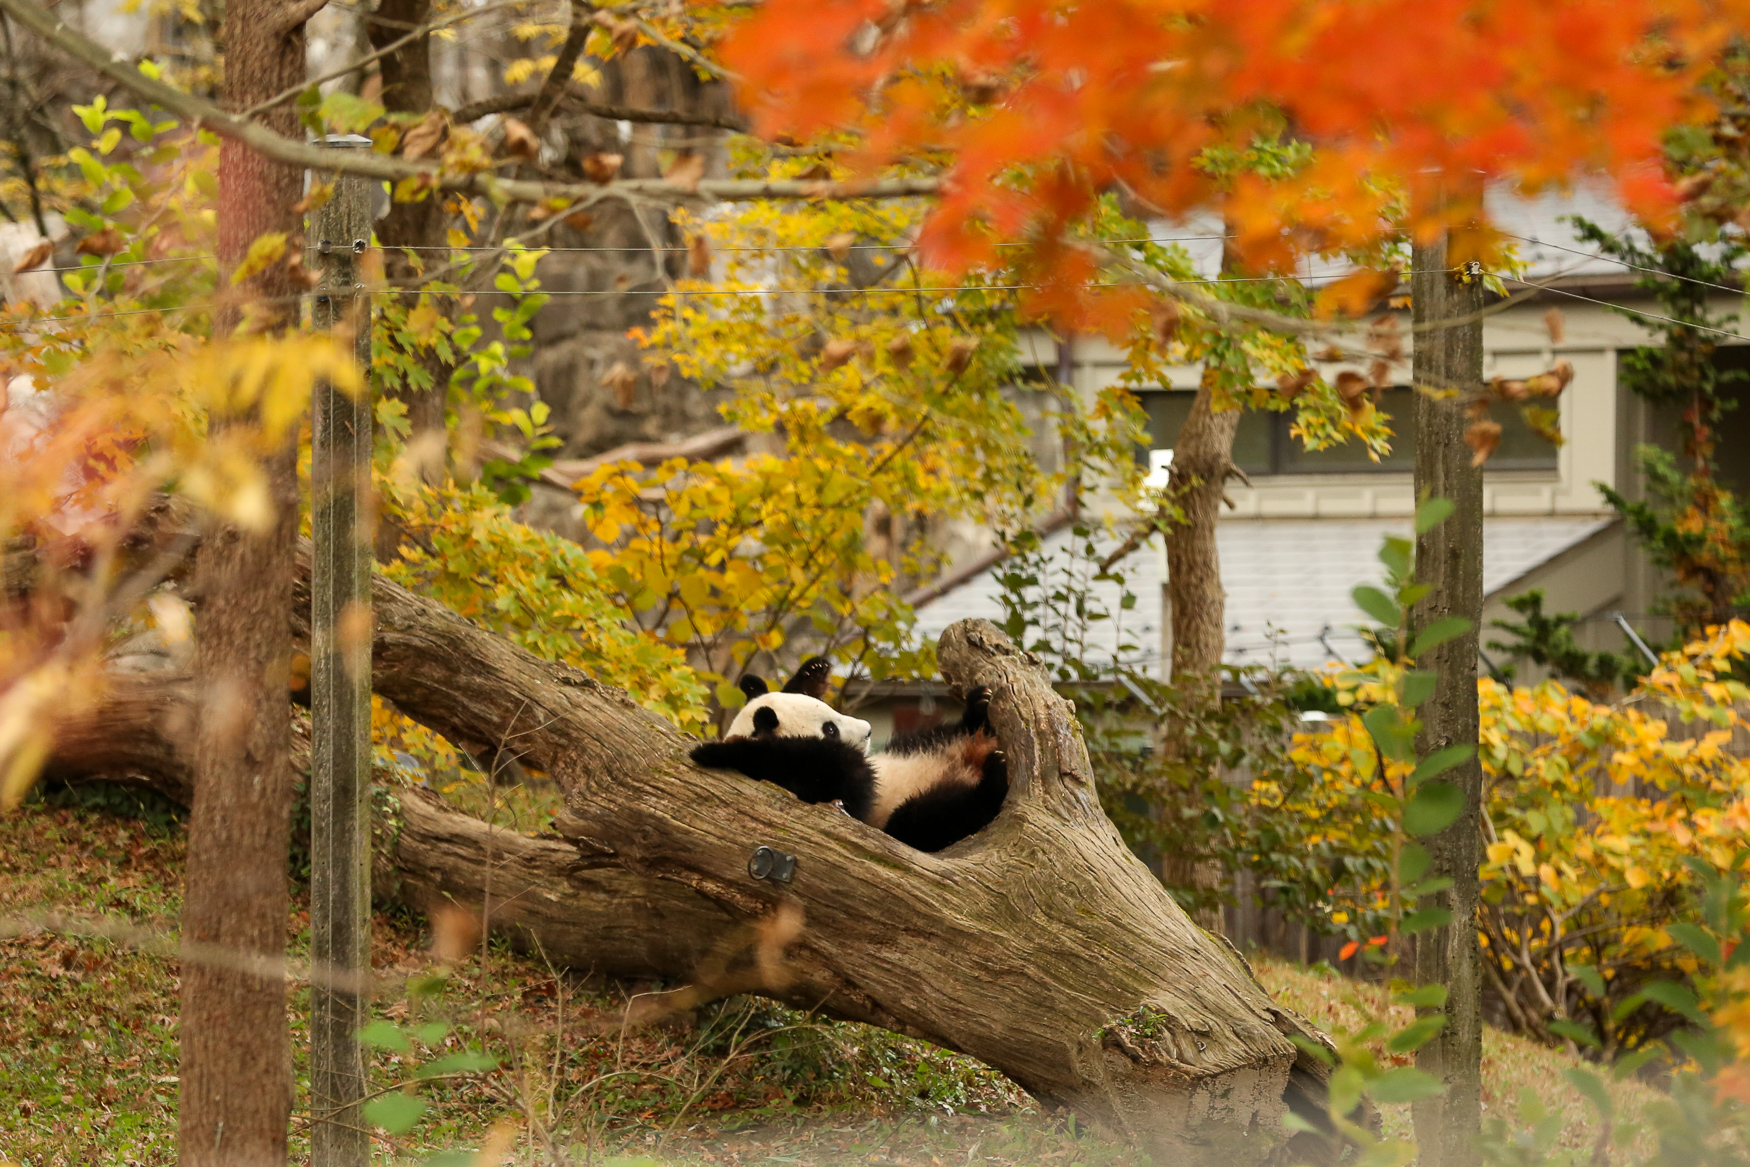 As the autumn leaves thrust Rock Creek Park into a bloom of color, the animals of the Smithsonian National Zoo seem to be enjoying the shifting weather. The crowds are way less intense than they were all summer and animals are less prone to hiding in the shade to avoid the heat, meaning now is the best time to catch the zoo's residents frolicking in the falling leaves. (Amanda Andrade-Rhoades/DC Rhoades)